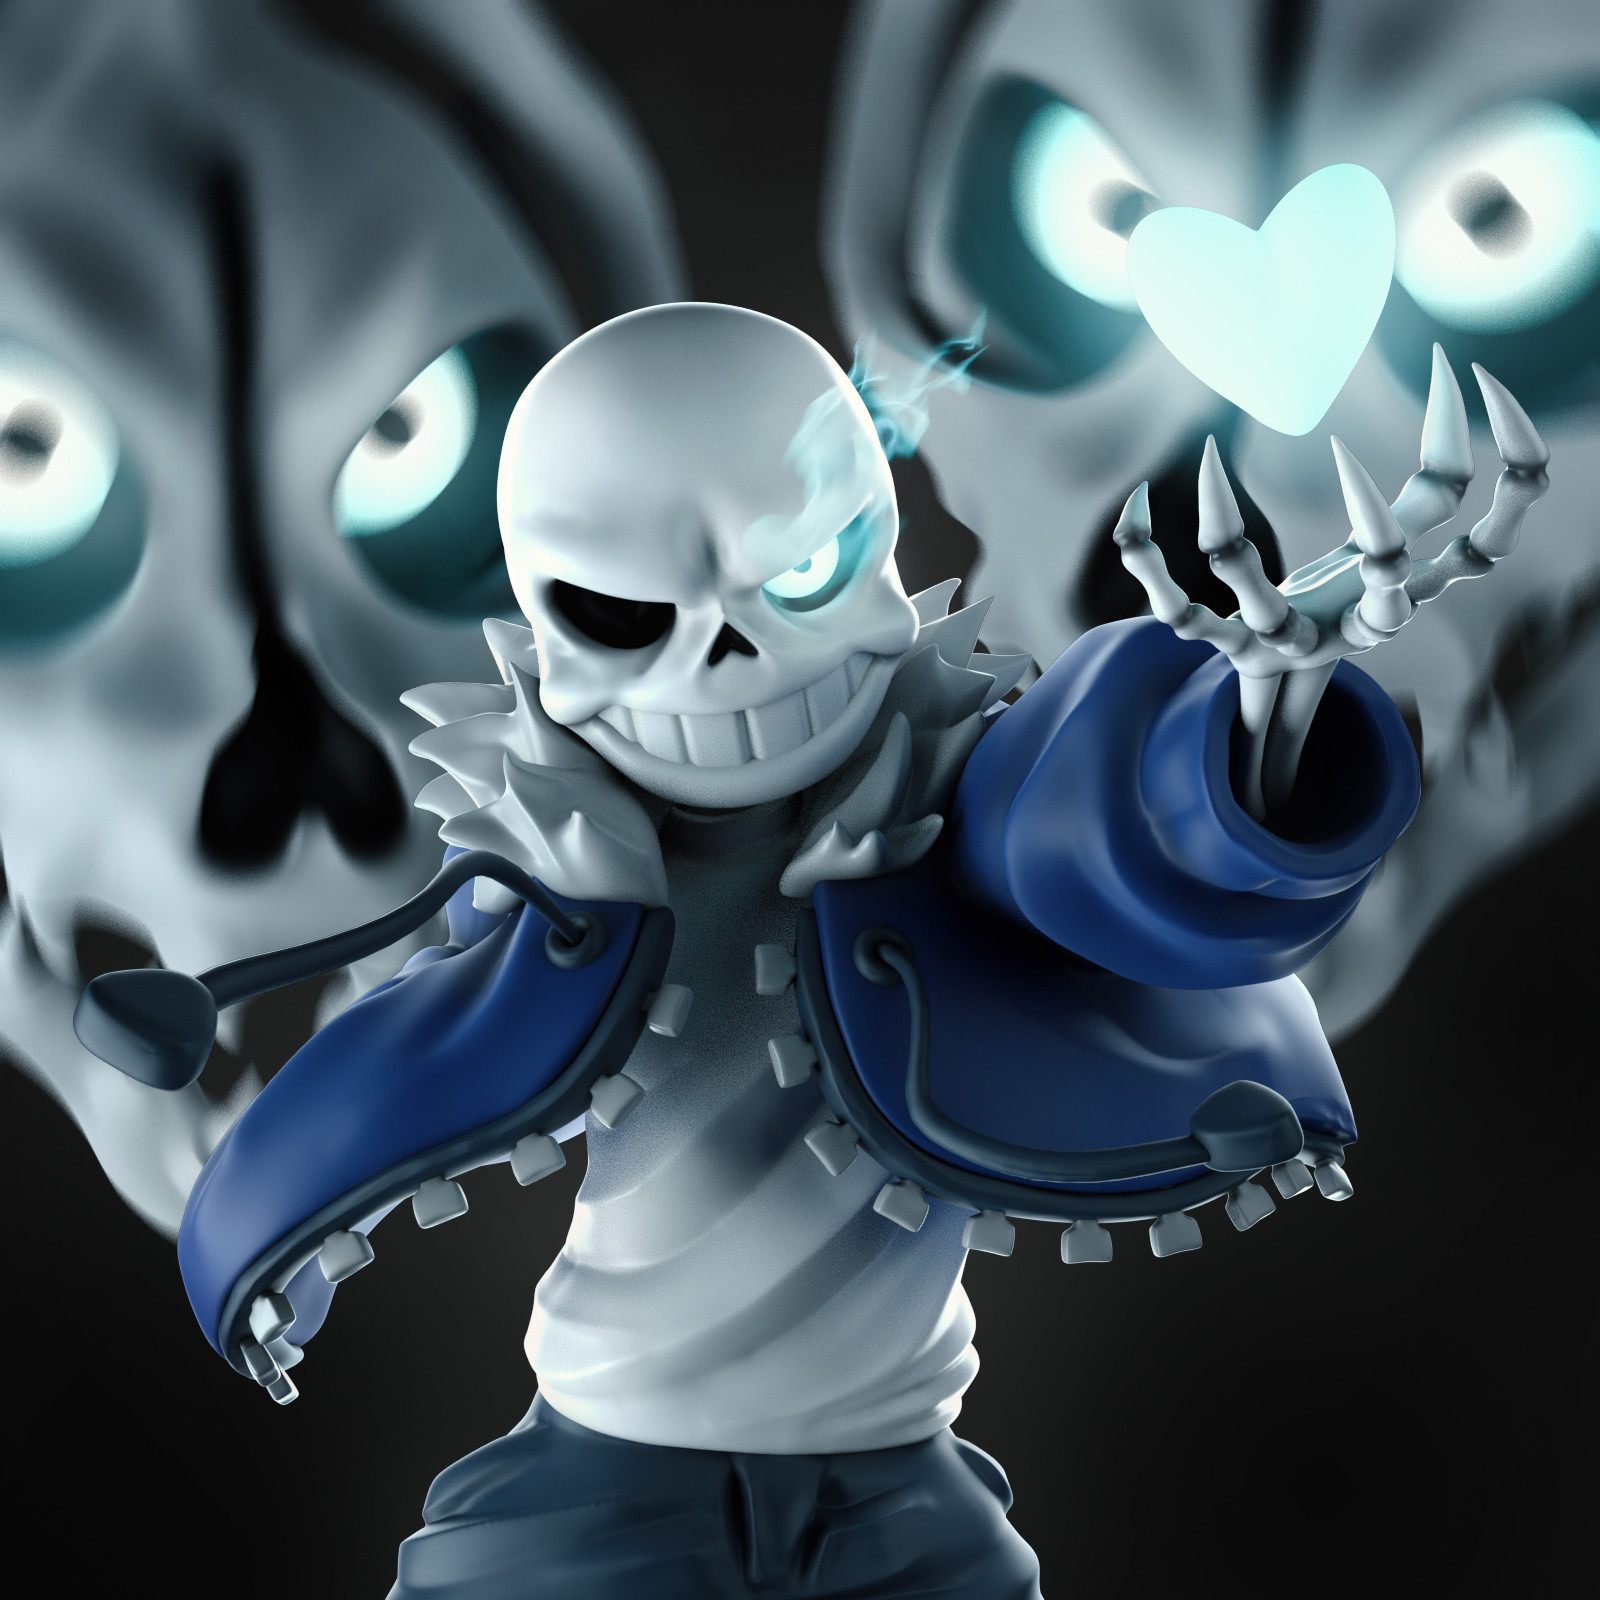 ArtStation - Do you wanna have a bad time?, Hodei Piquer